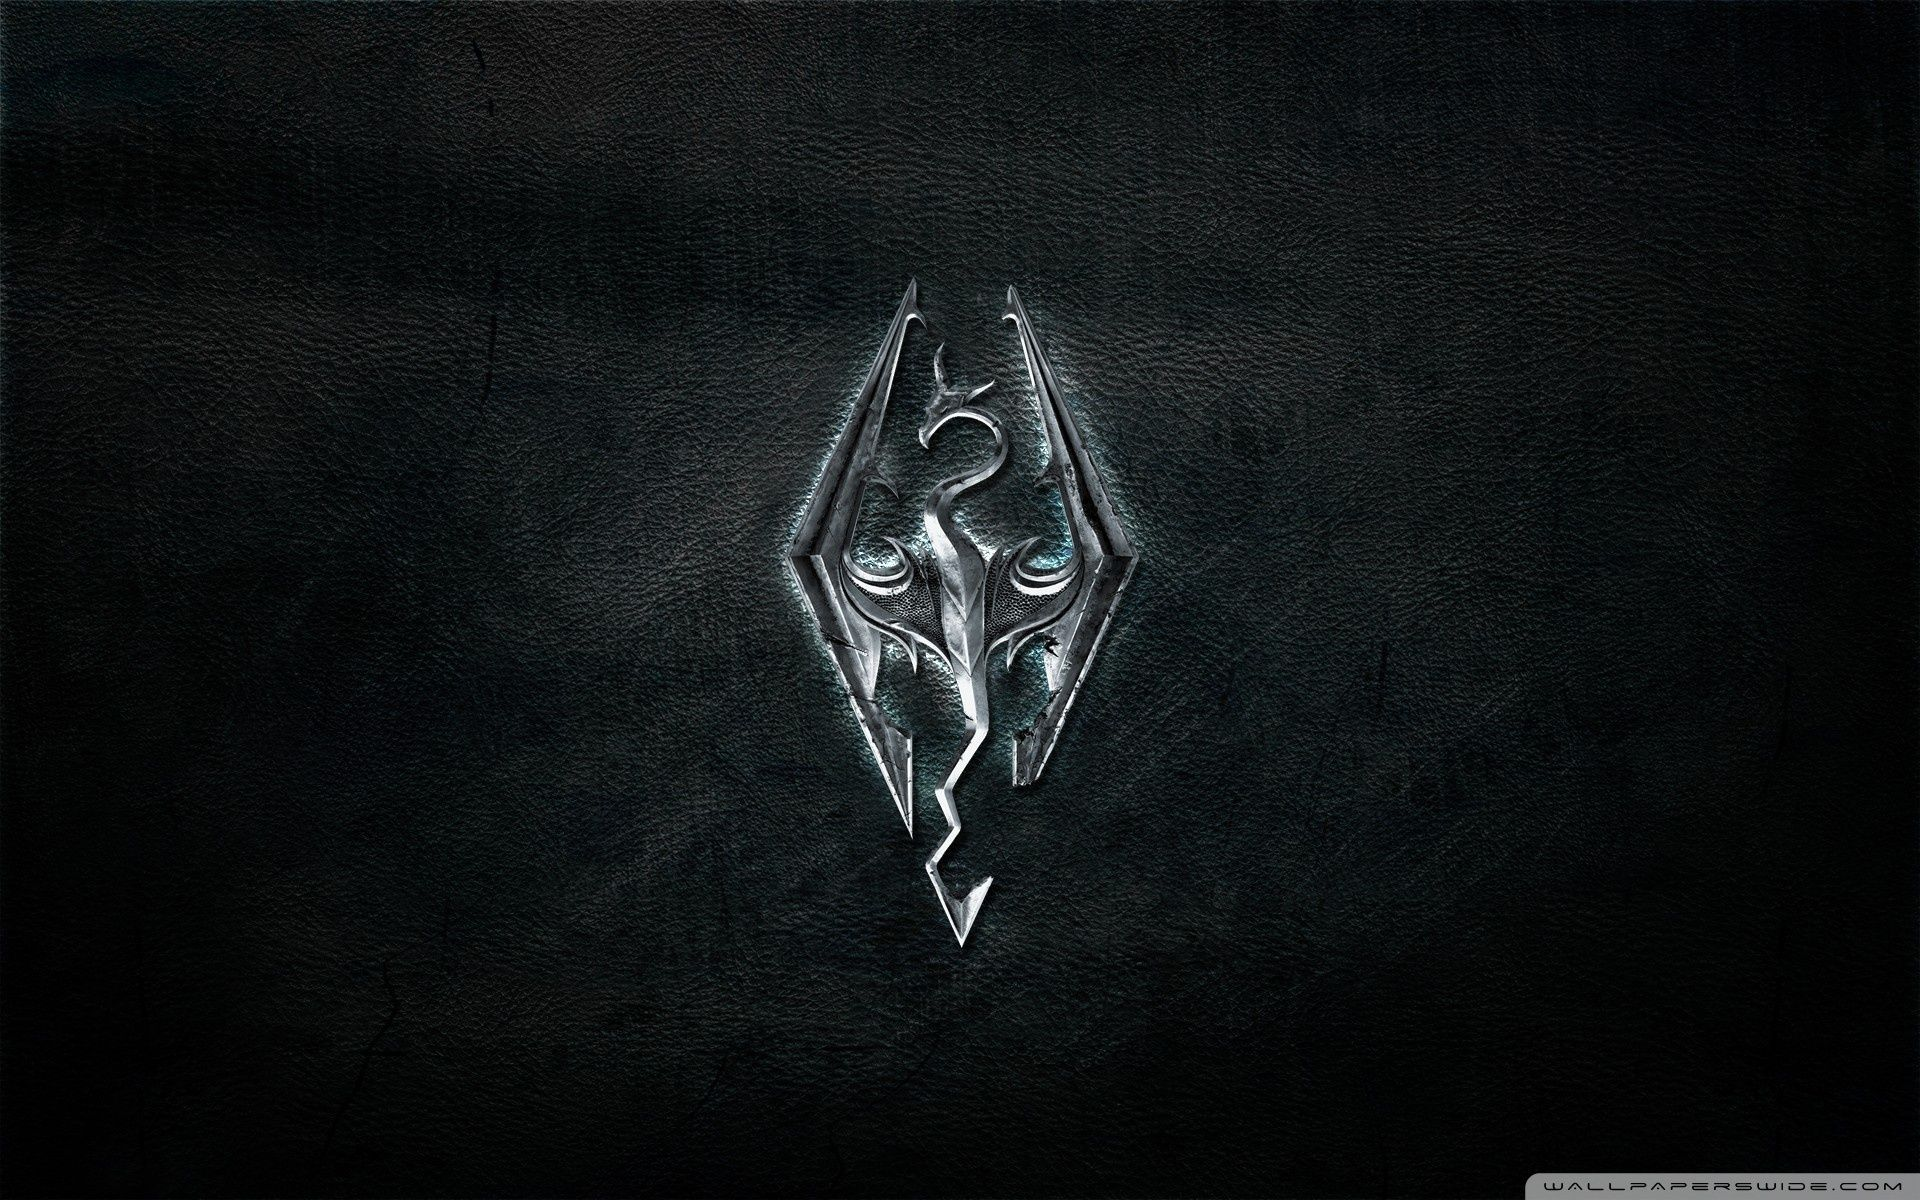 Skyrim Logo Wallpapers - Top Free Skyrim Logo Backgrounds - WallpaperAccess